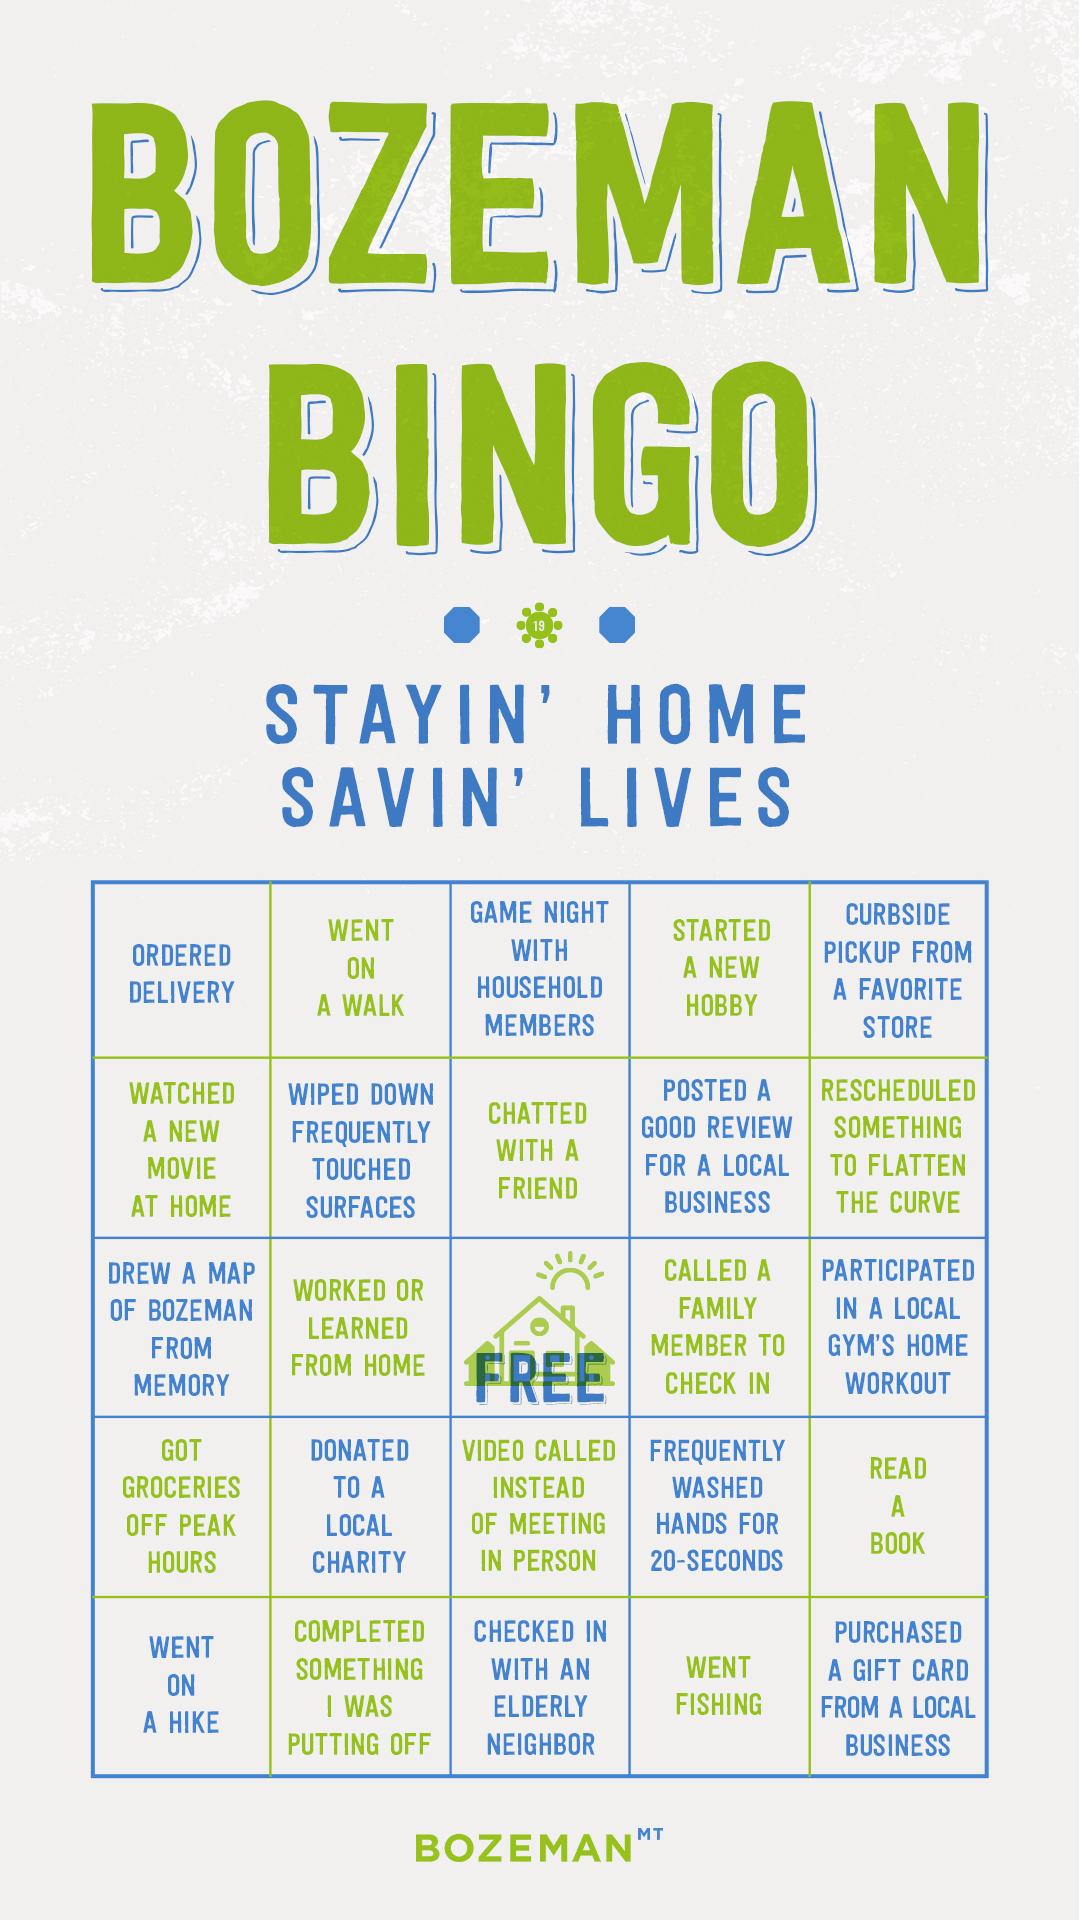 City of Bozeman bingo card with COVID social distancing activities.